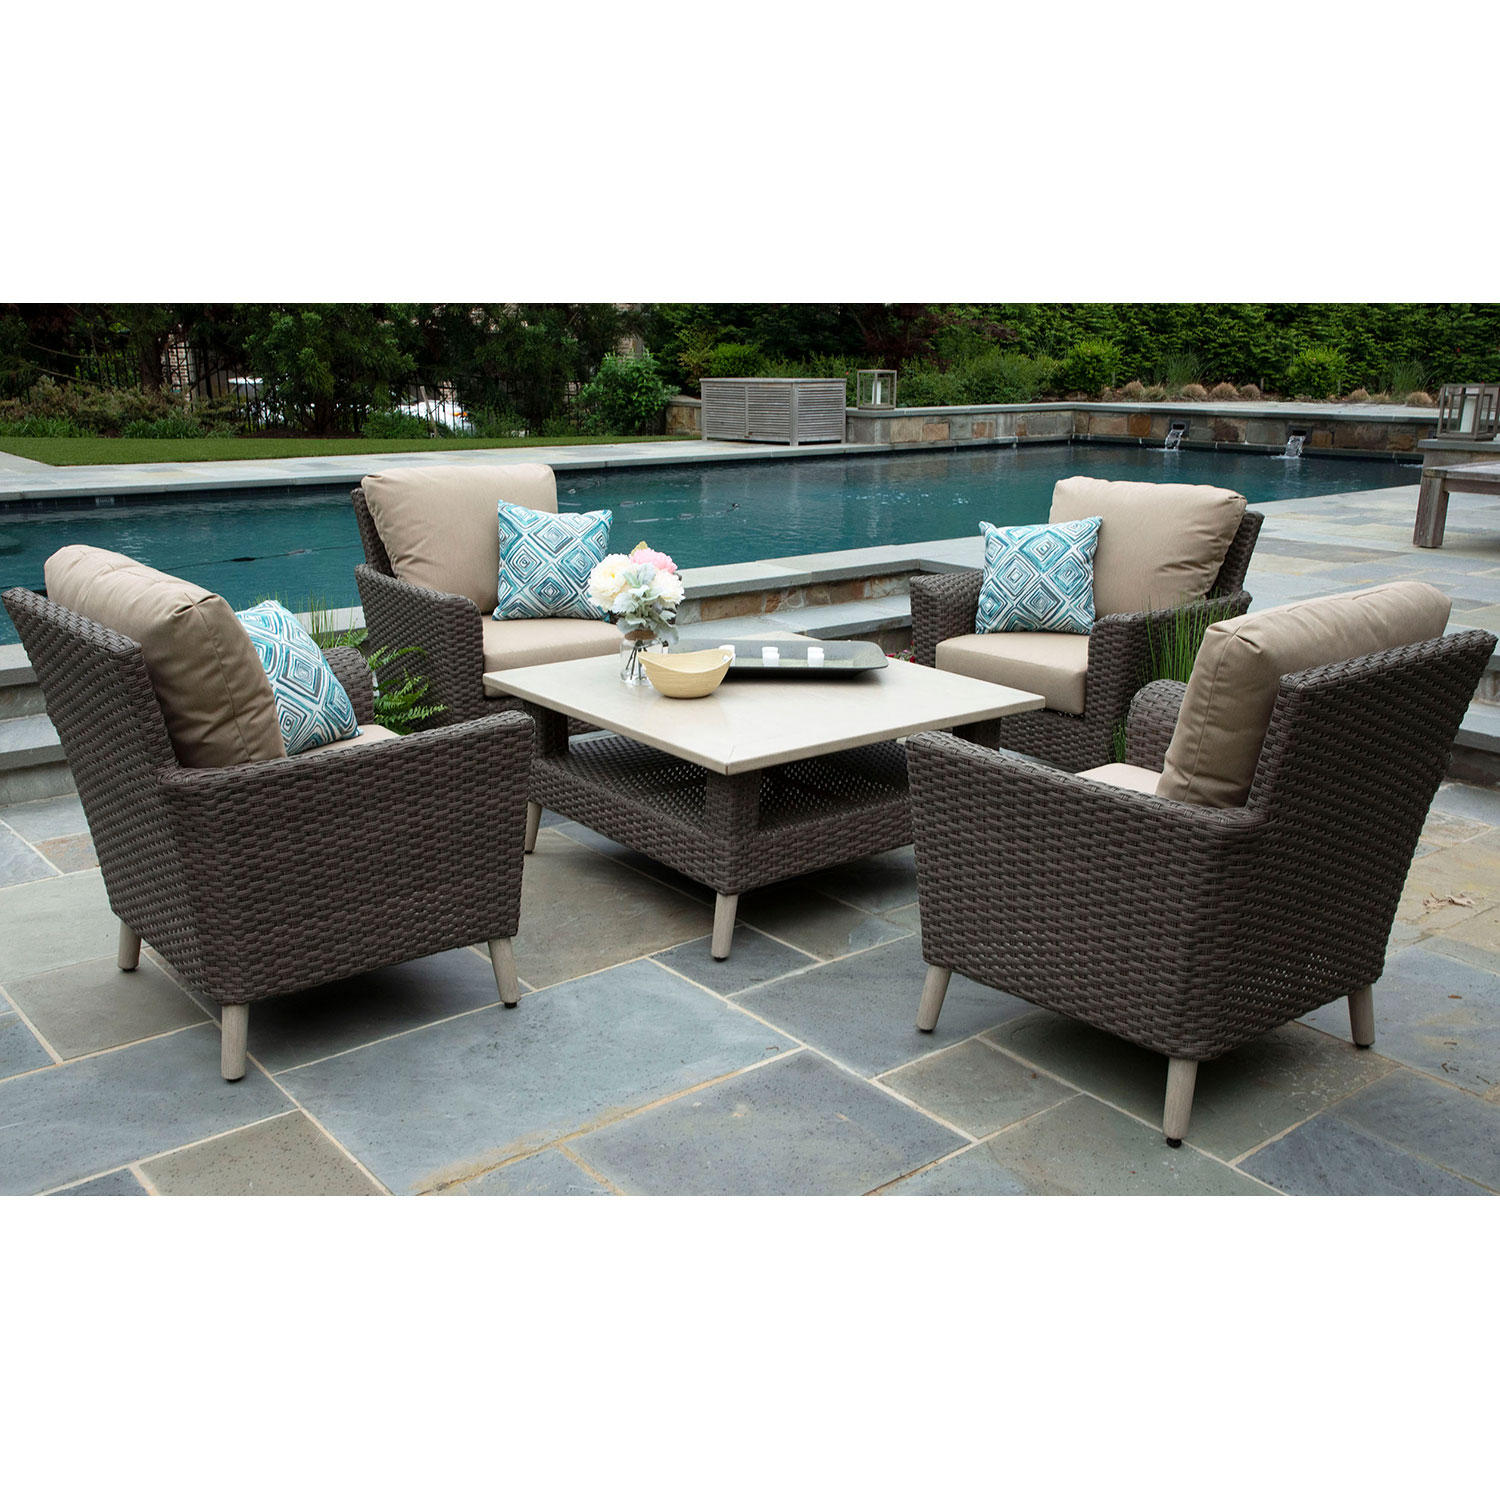 Noble 5-Piece Patio Deep Seating Sofa Set with Sunbrella Fabric